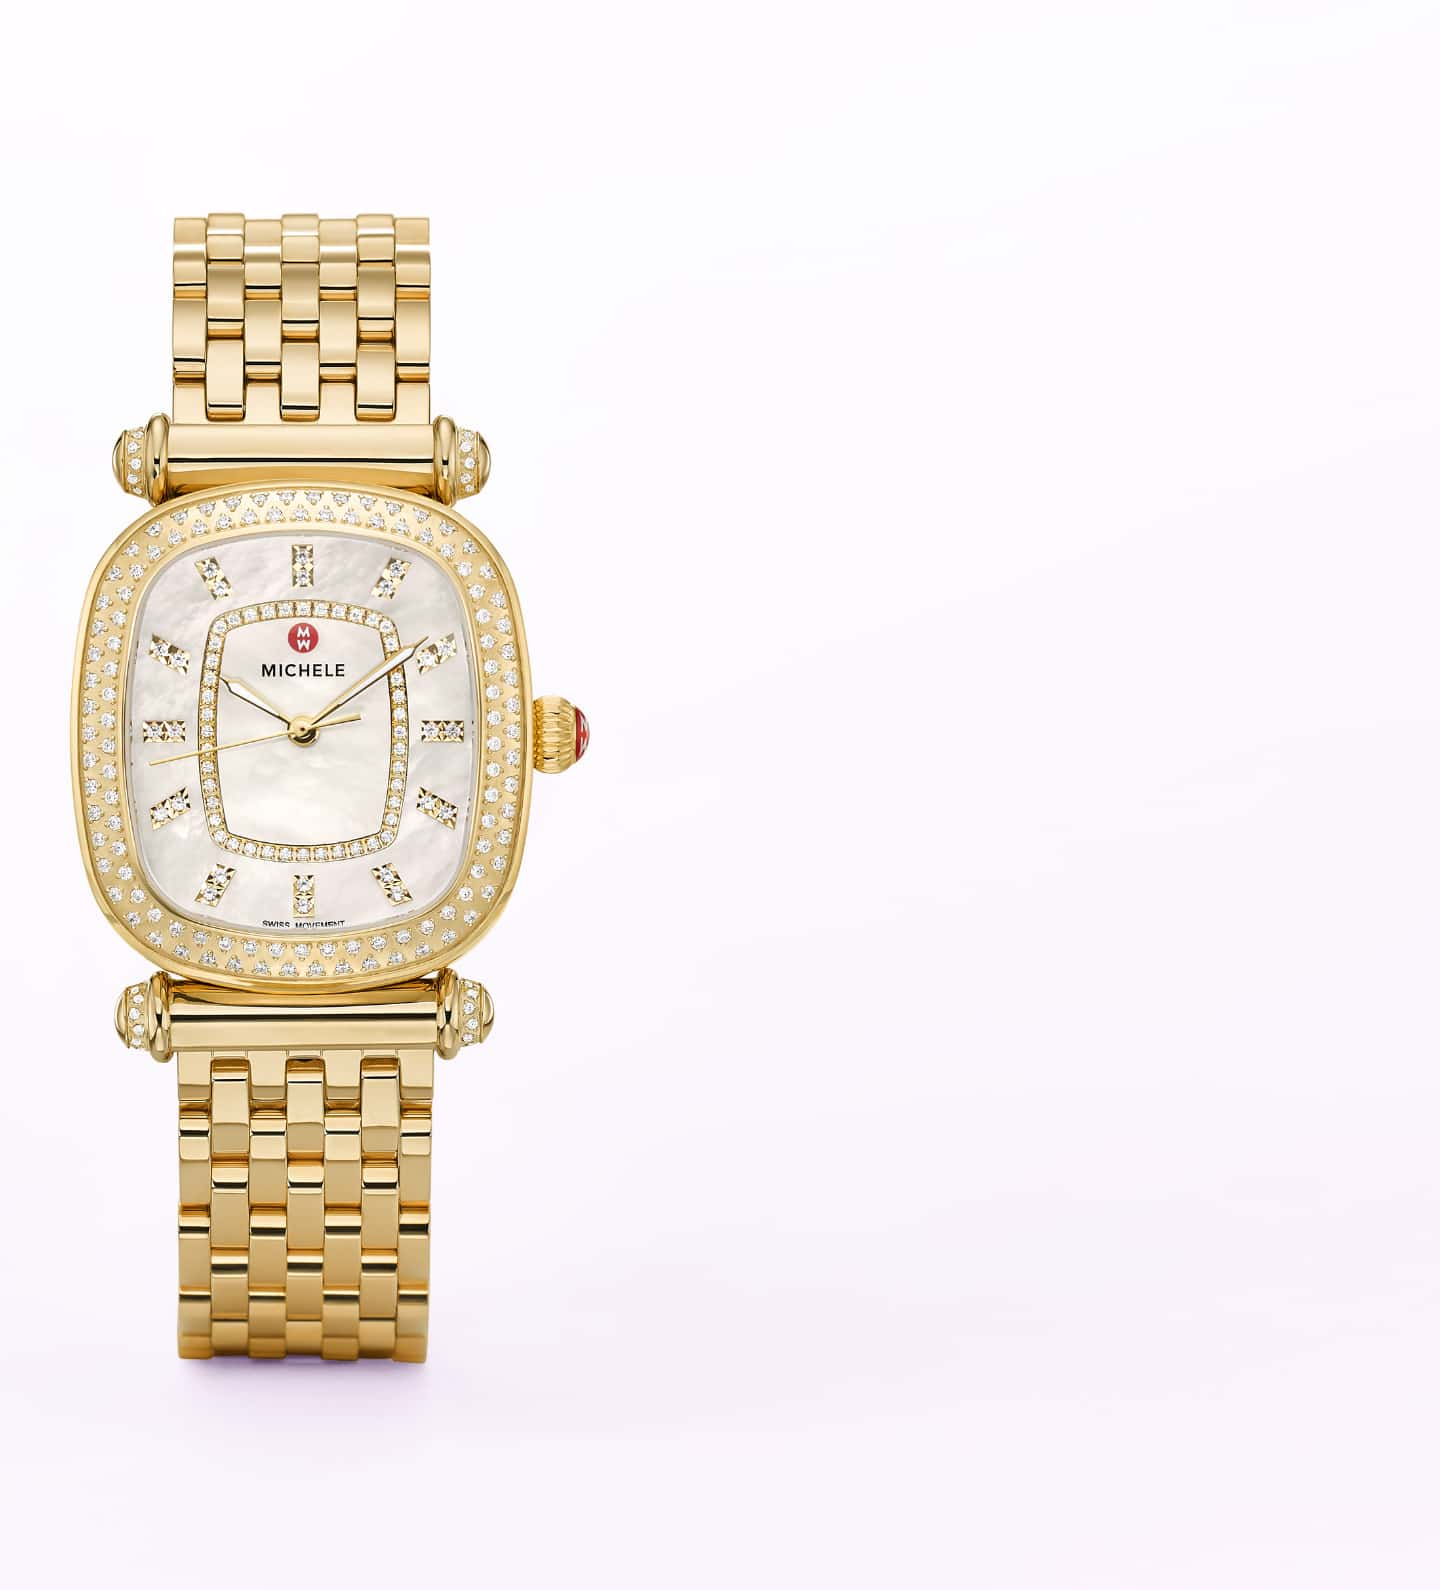 18K gold-tone Caber Isle watch featuring cushion-shaped case, diamond-covered bezel and t-bar lugs.